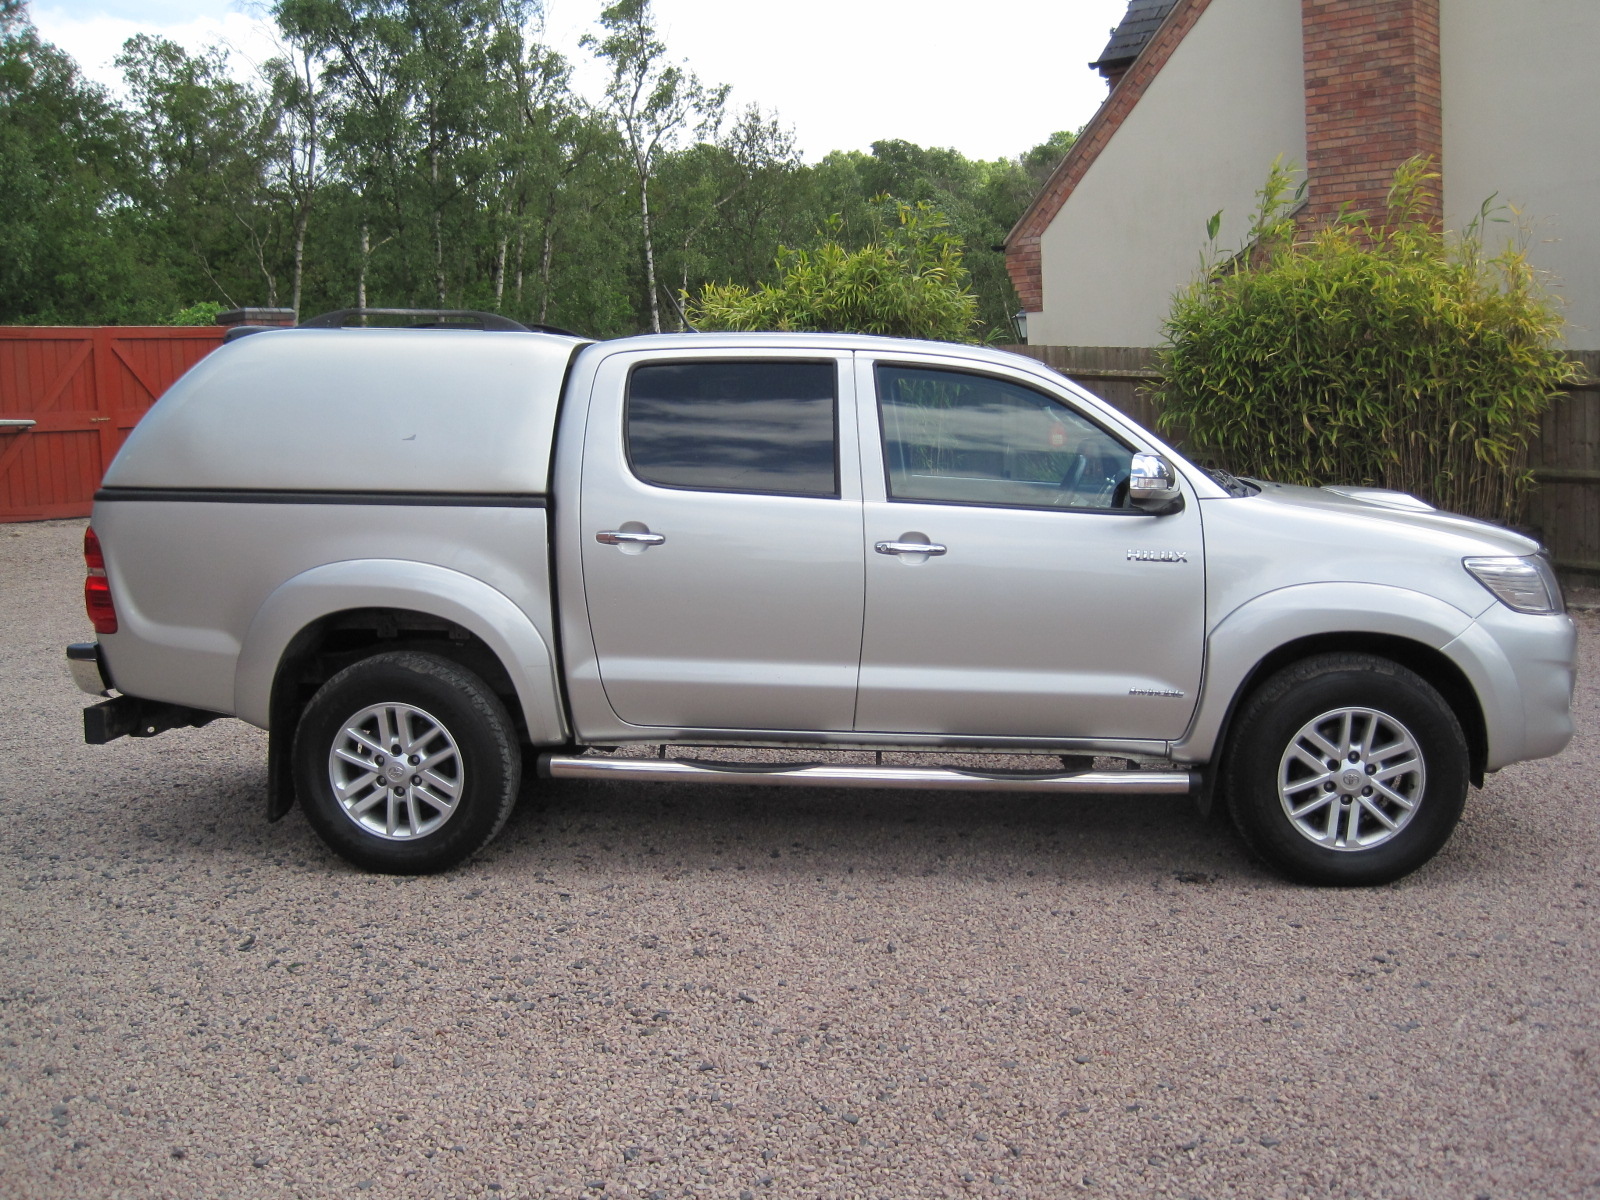 2014 64 Toyota Hilux 3.0 D-4D Invincible Double Cab Pickup SILVER 1 OWNER FROM NEW IMMACULATE! NO VAT! SOLD! full